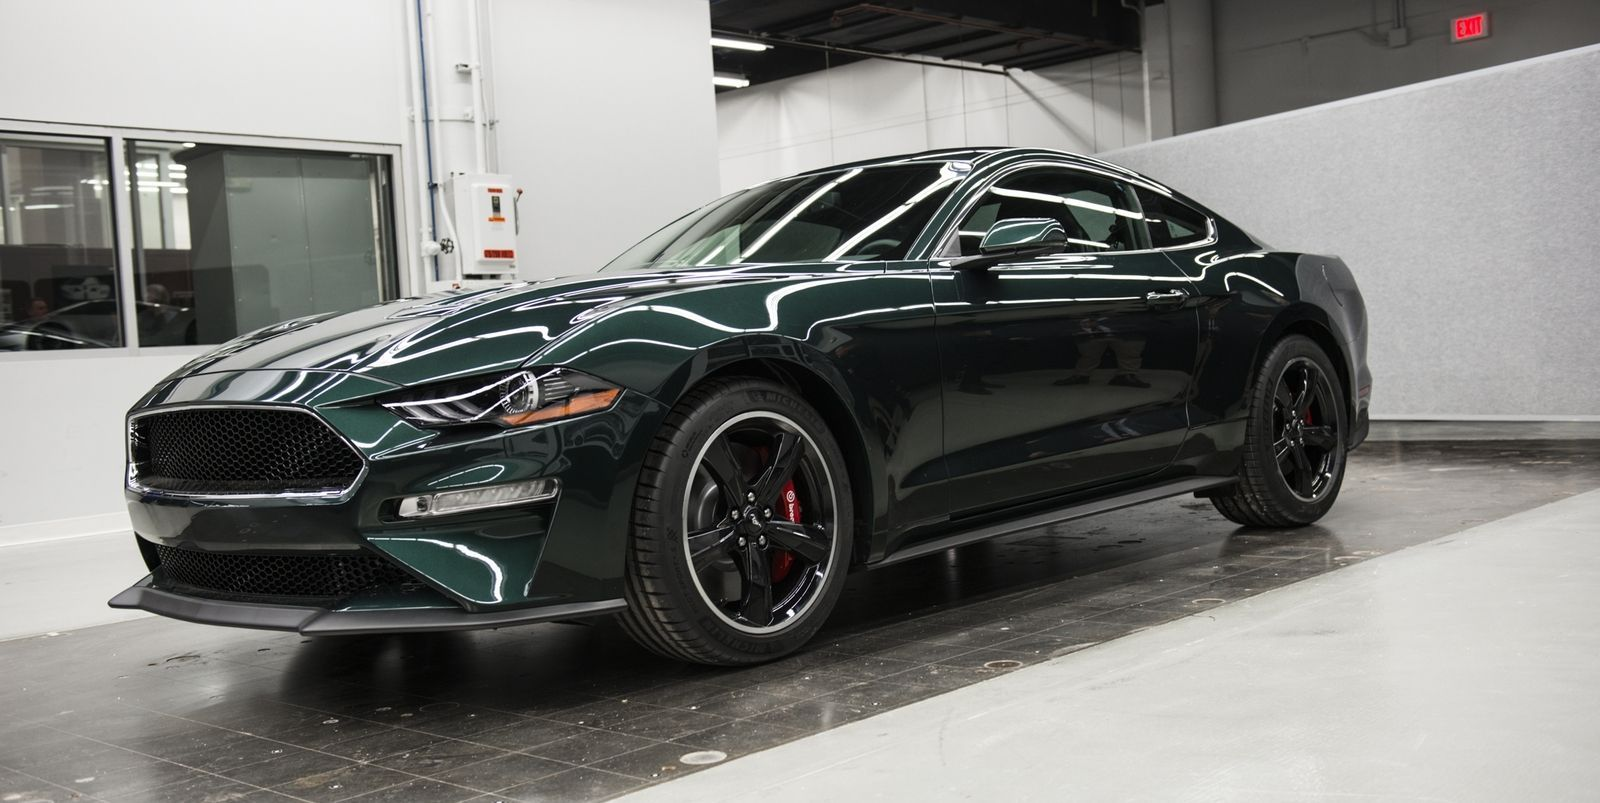 The 2019 Ford Mustang Bullitt Is A Ripping 475 Hp Tribute To The Original Mustang Bullitt Ford Mustang Bullitt Ford Mustang